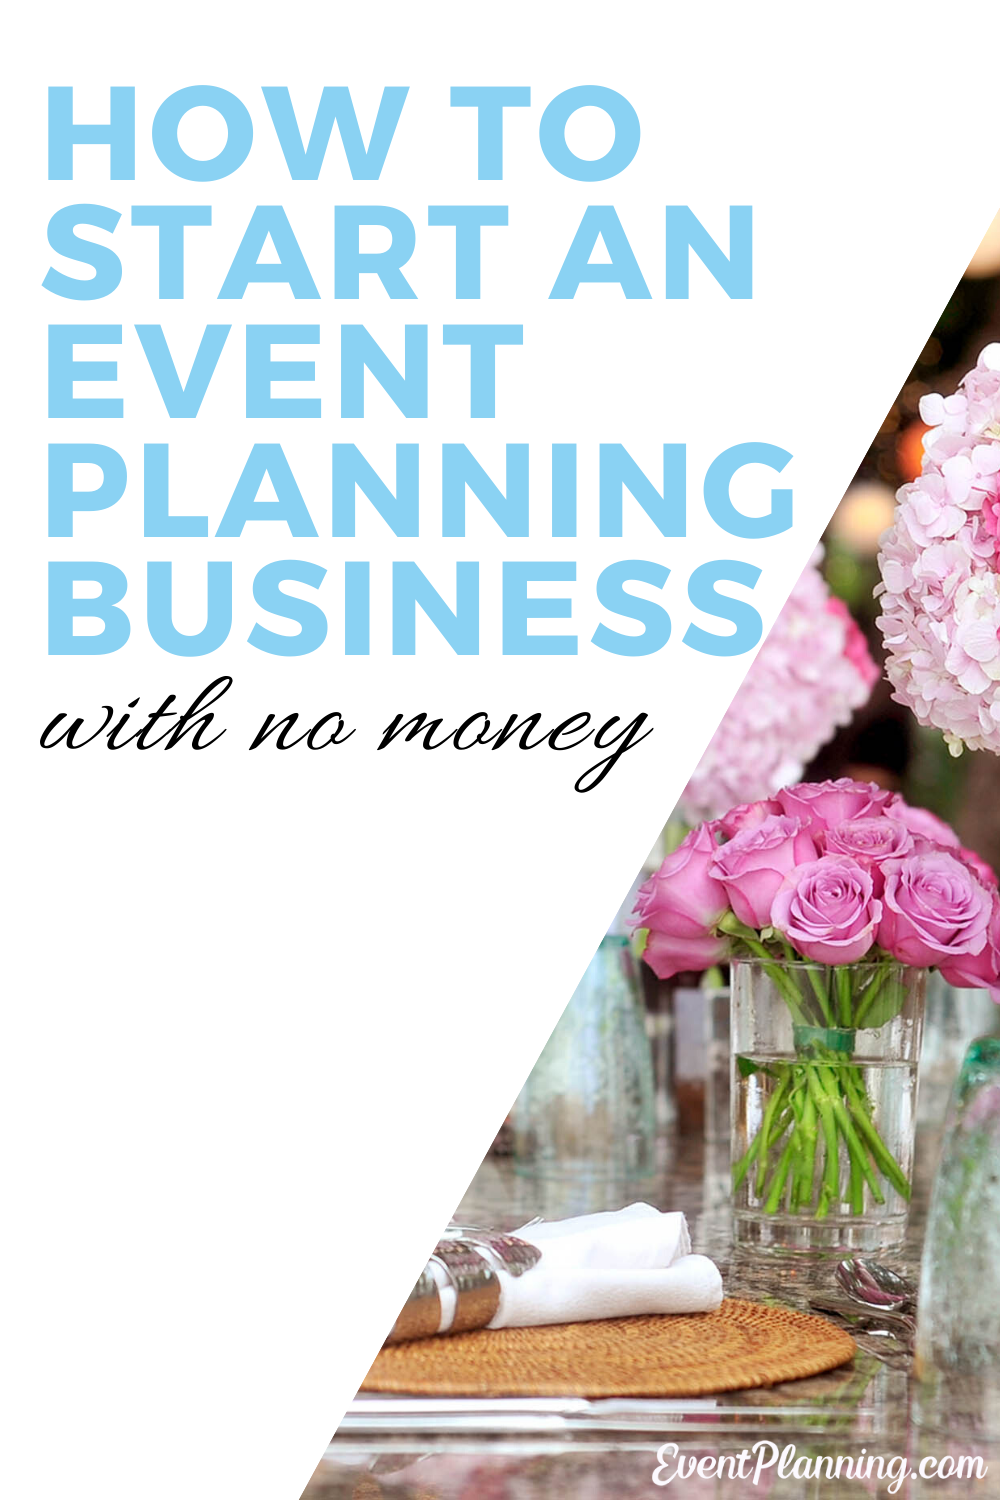 Contrary to popular belief, it's easy to start event planning with no money. Event planning is an exciting path that can be incredibly profitable for many people. If you're wondering how to start your wedding or event planning business. This is the post for you! #weddingbusiness #marketing